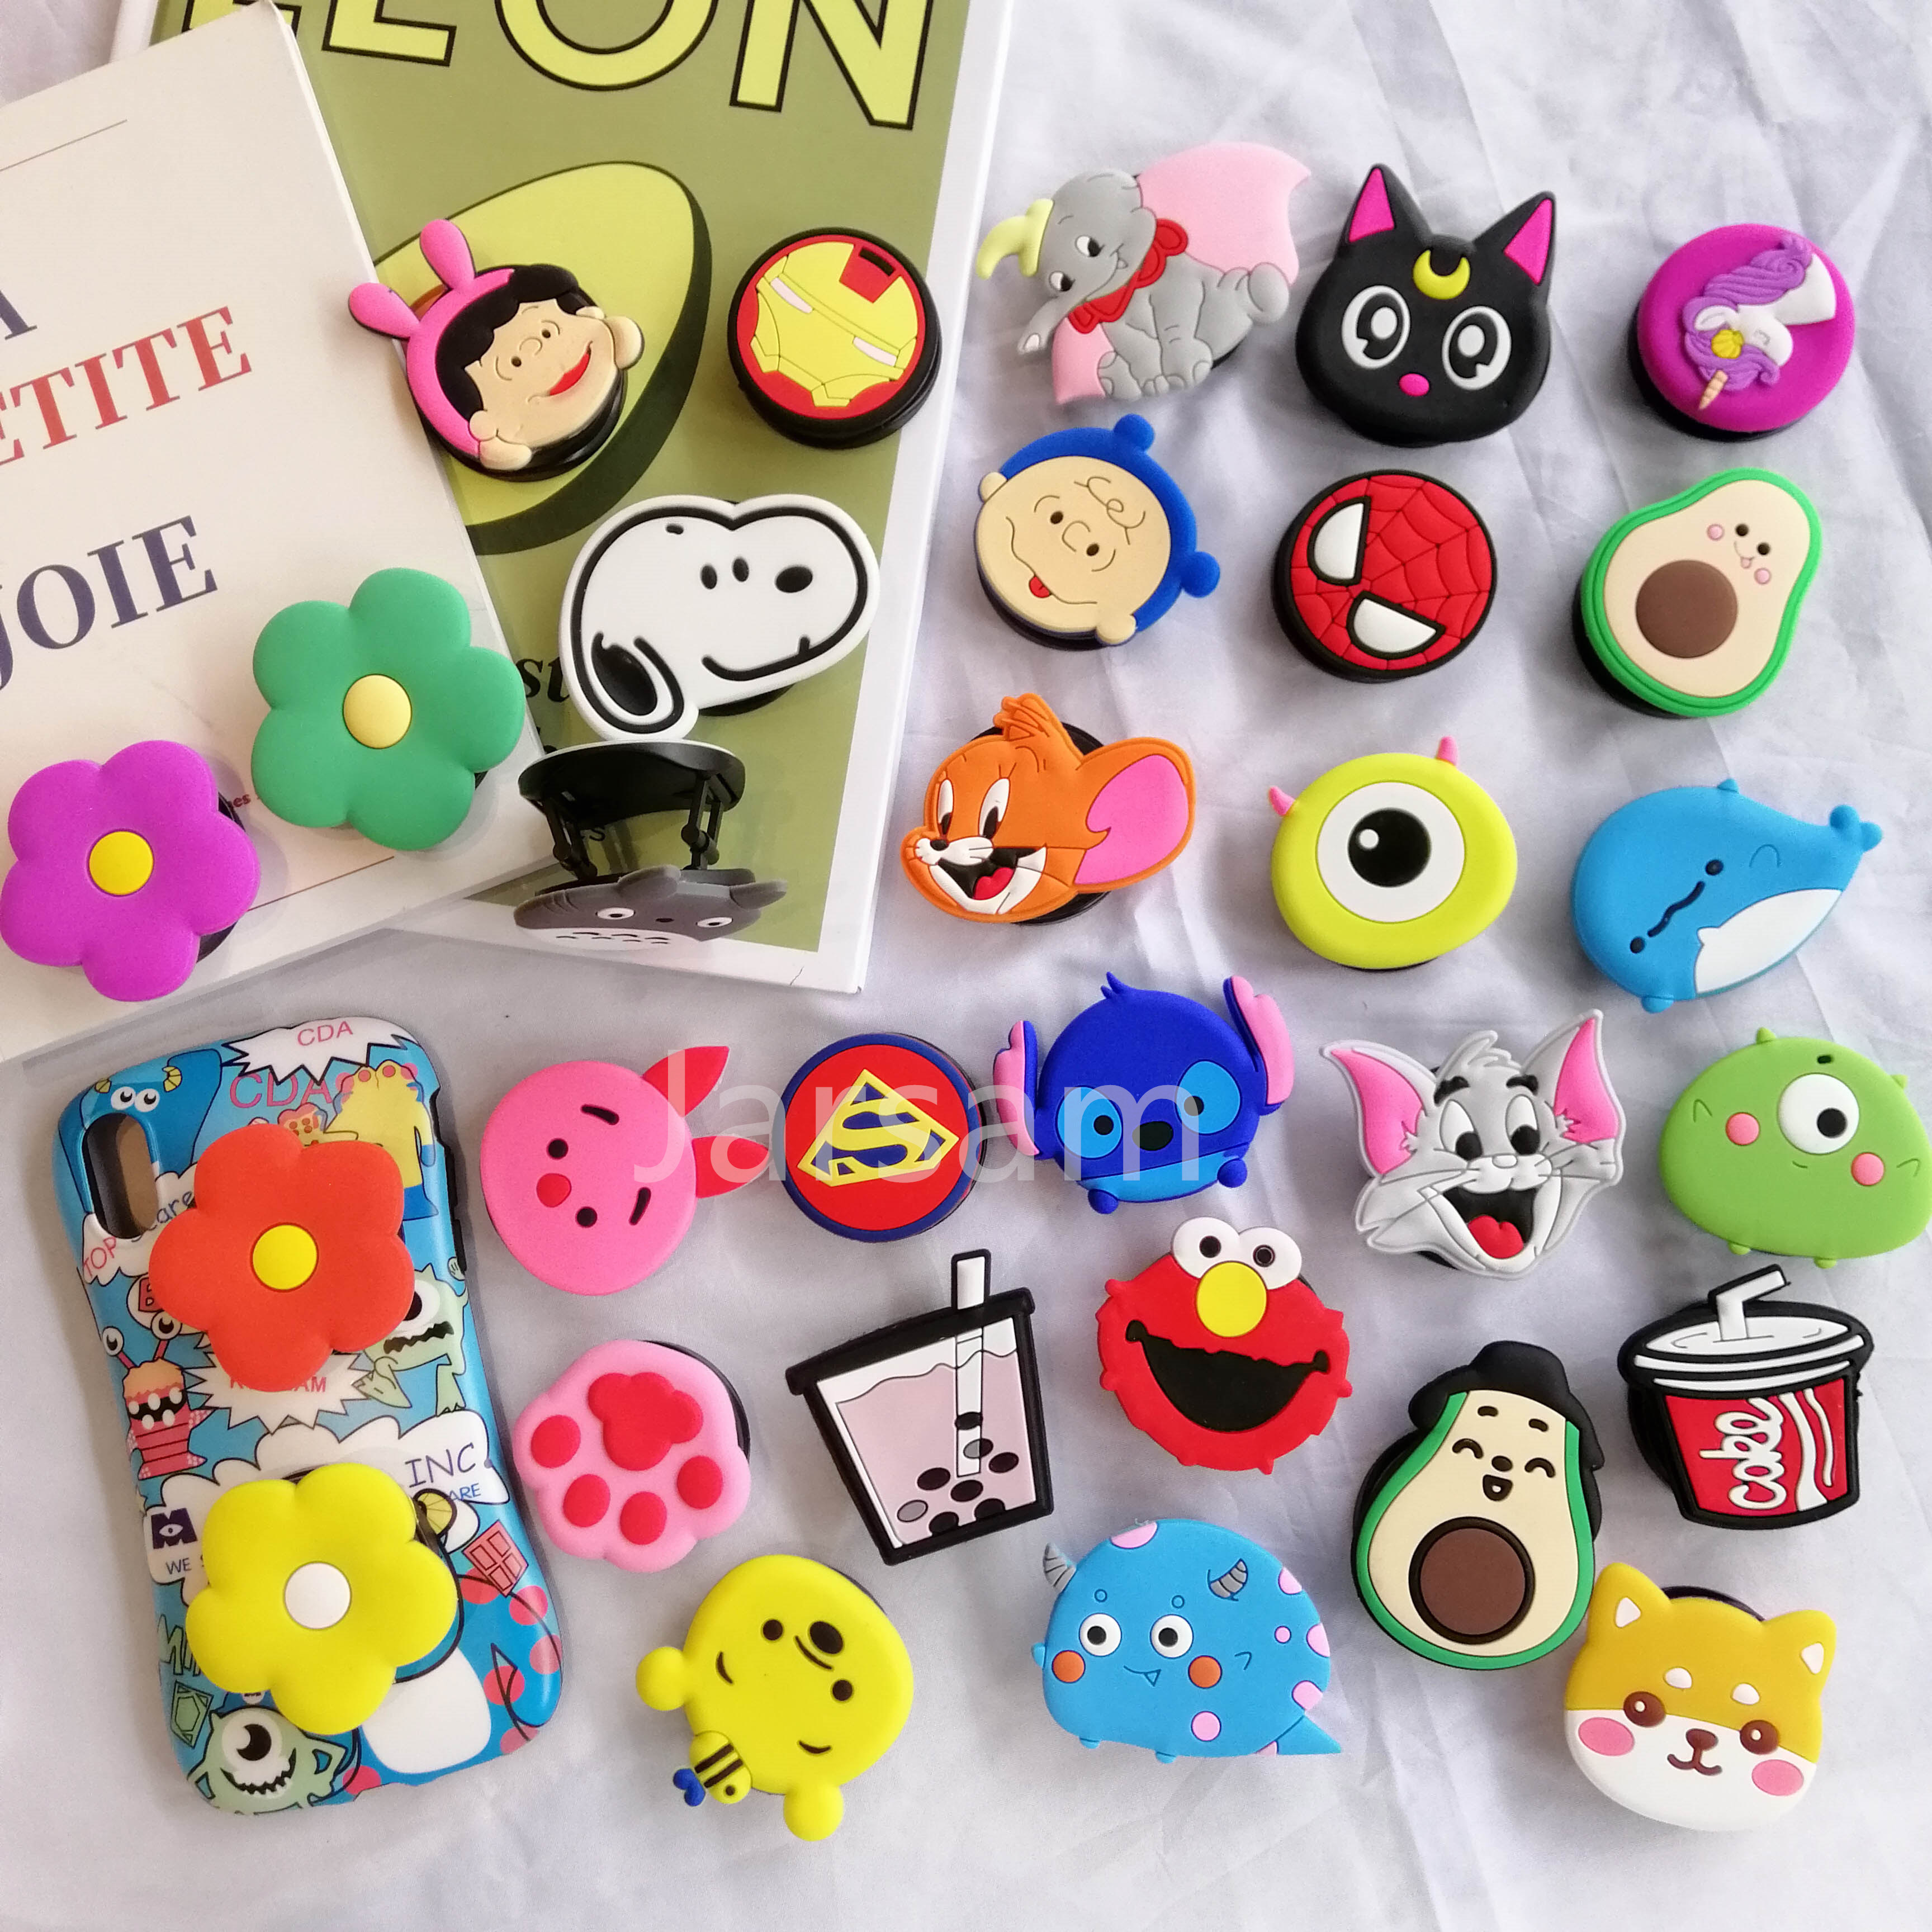 Cute  Cartoon Universal Mobile Phone Bracket Animal Folding Phone Expanding Stand Finger Holder  Phone Holder Stand Car